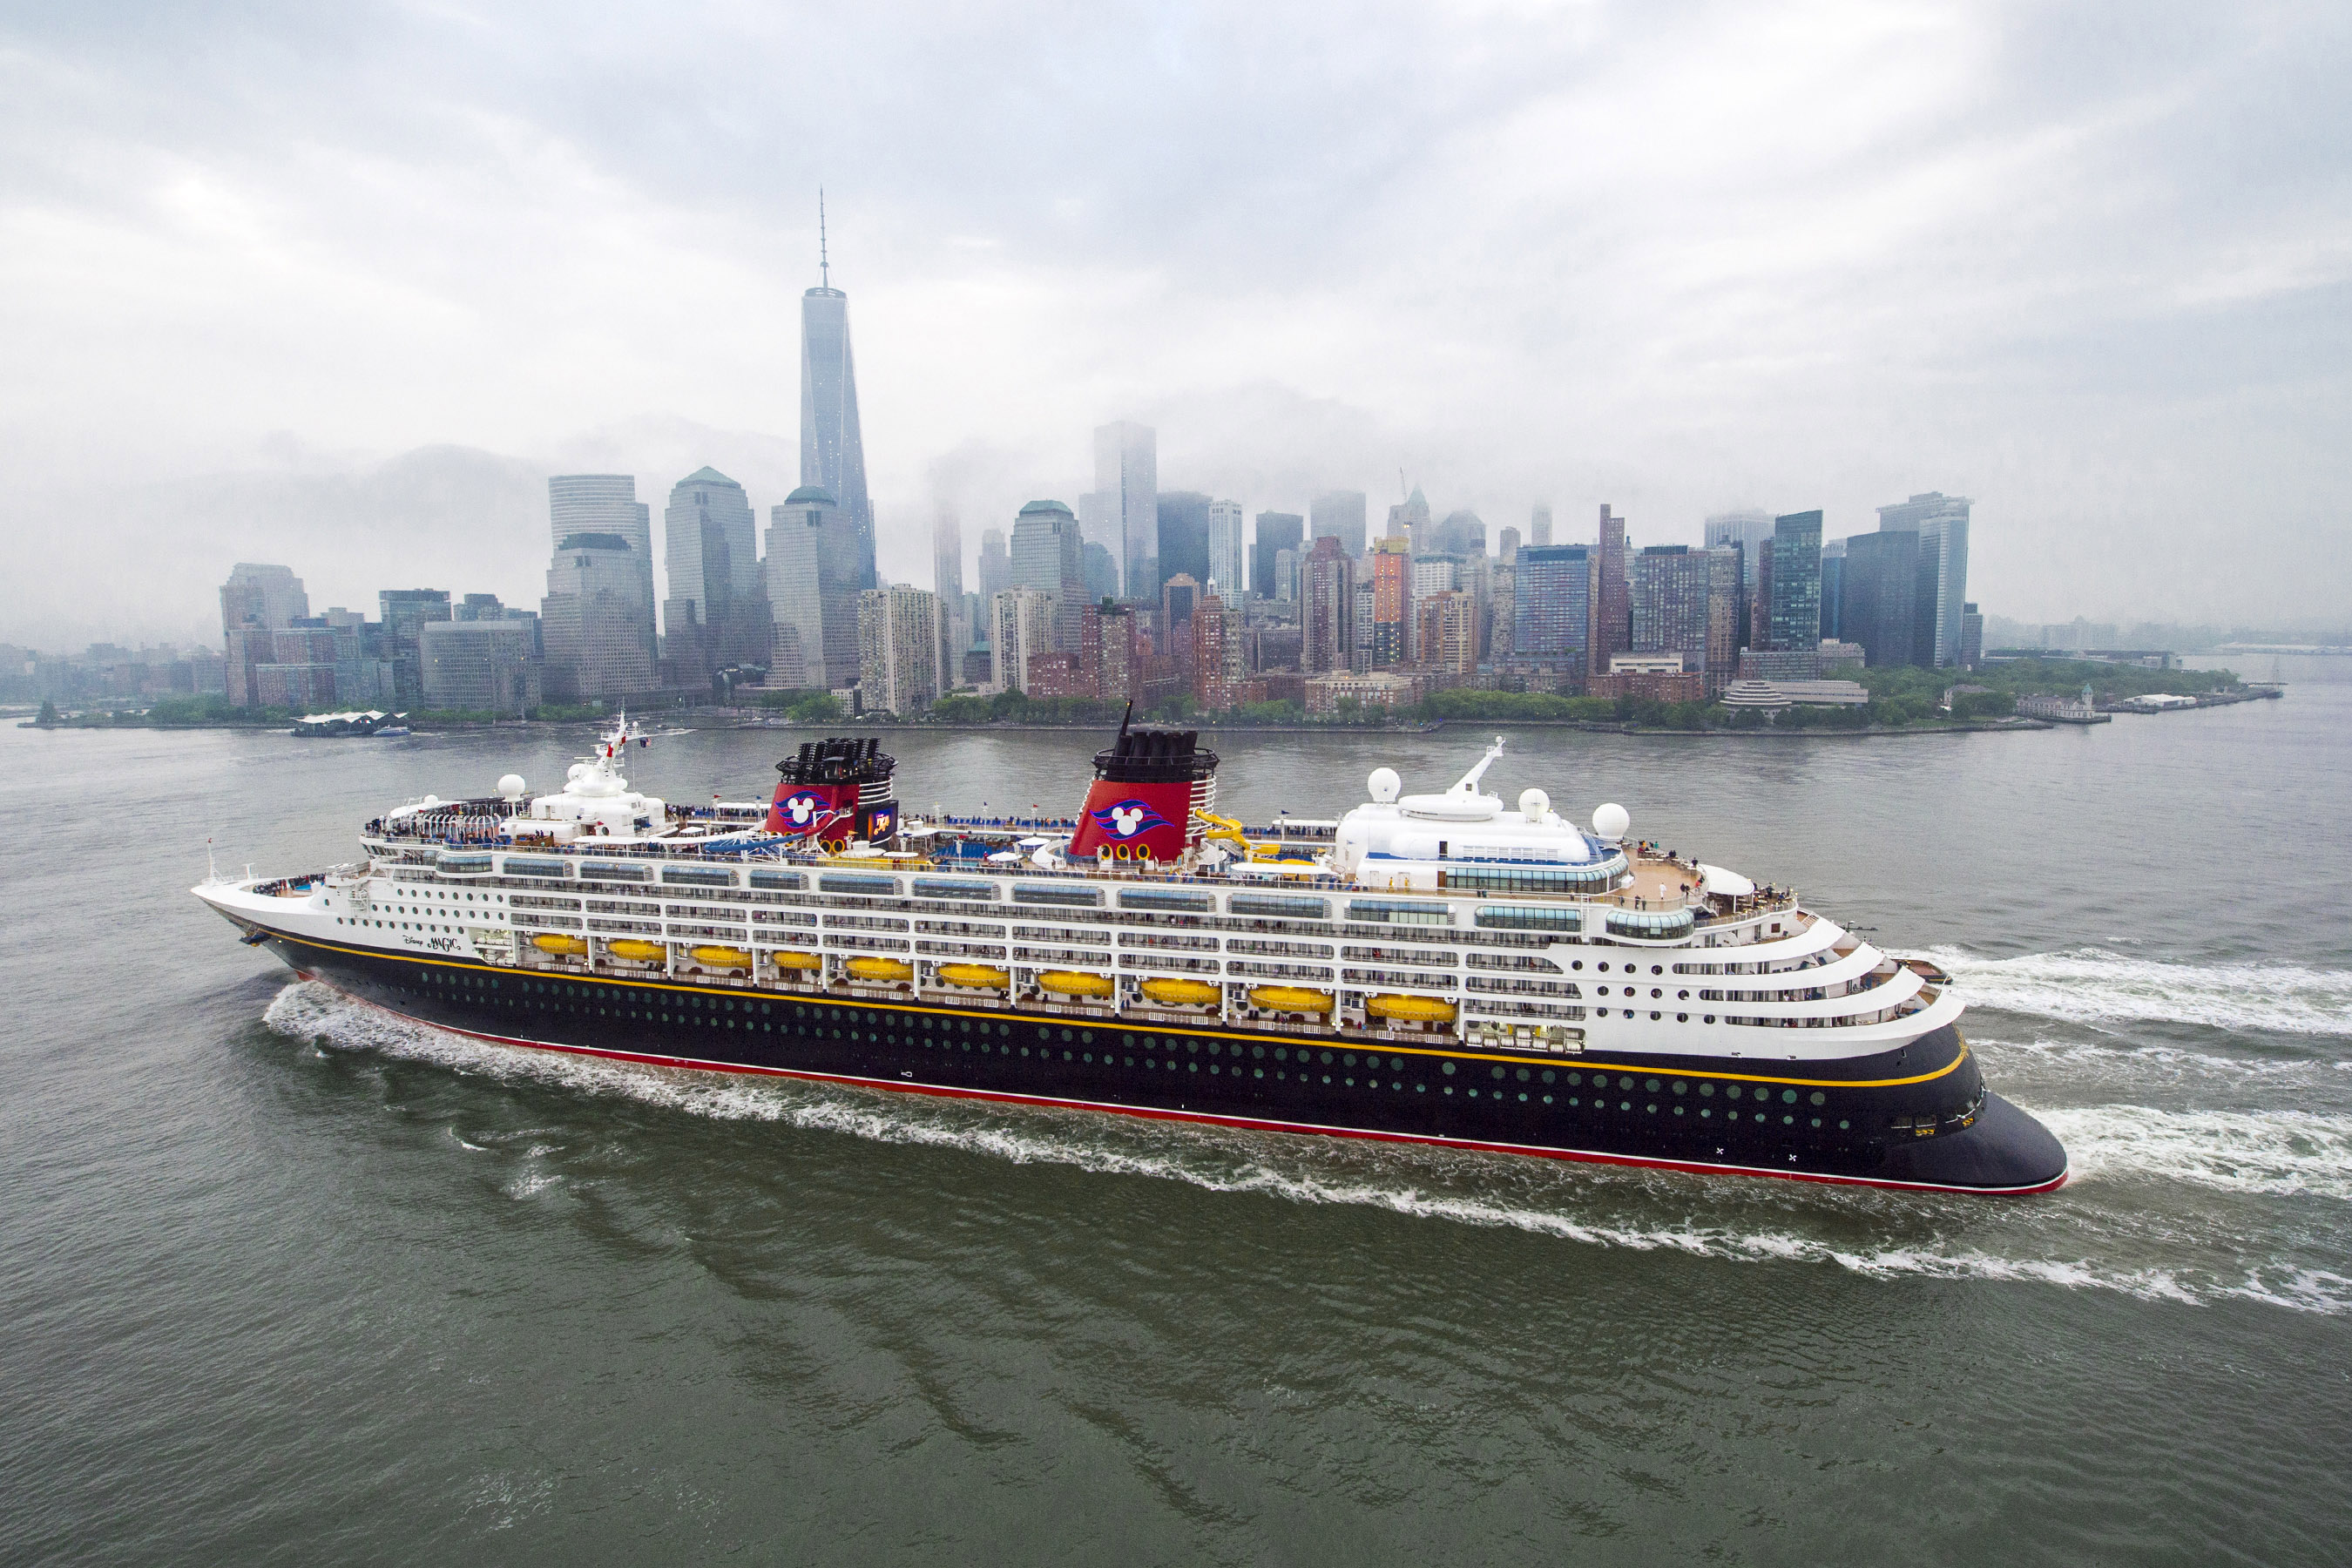 Disney Cruise Line Announces Sailing Out of NYC, Galveston, and San Diego in 2017